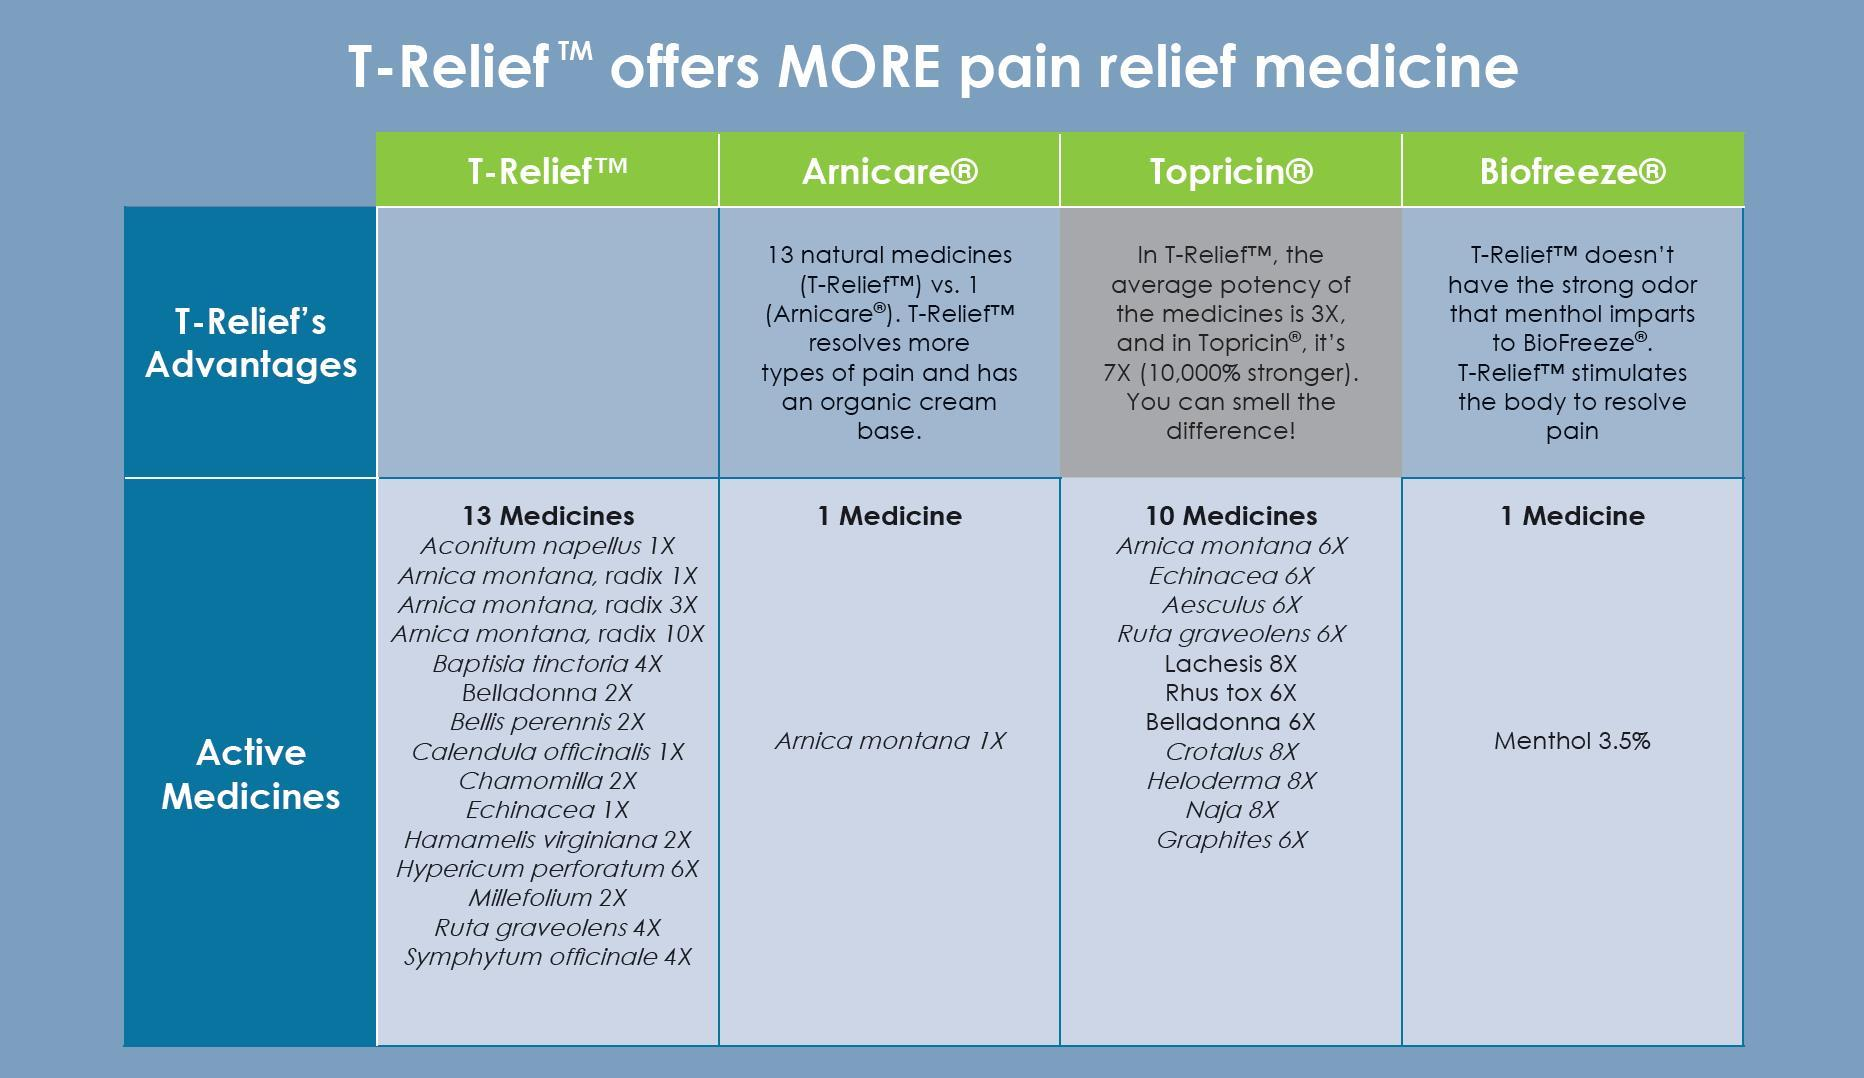 Amazon.com: T-Relief Pain Relief, 100 Tablets: Health & Personal Care